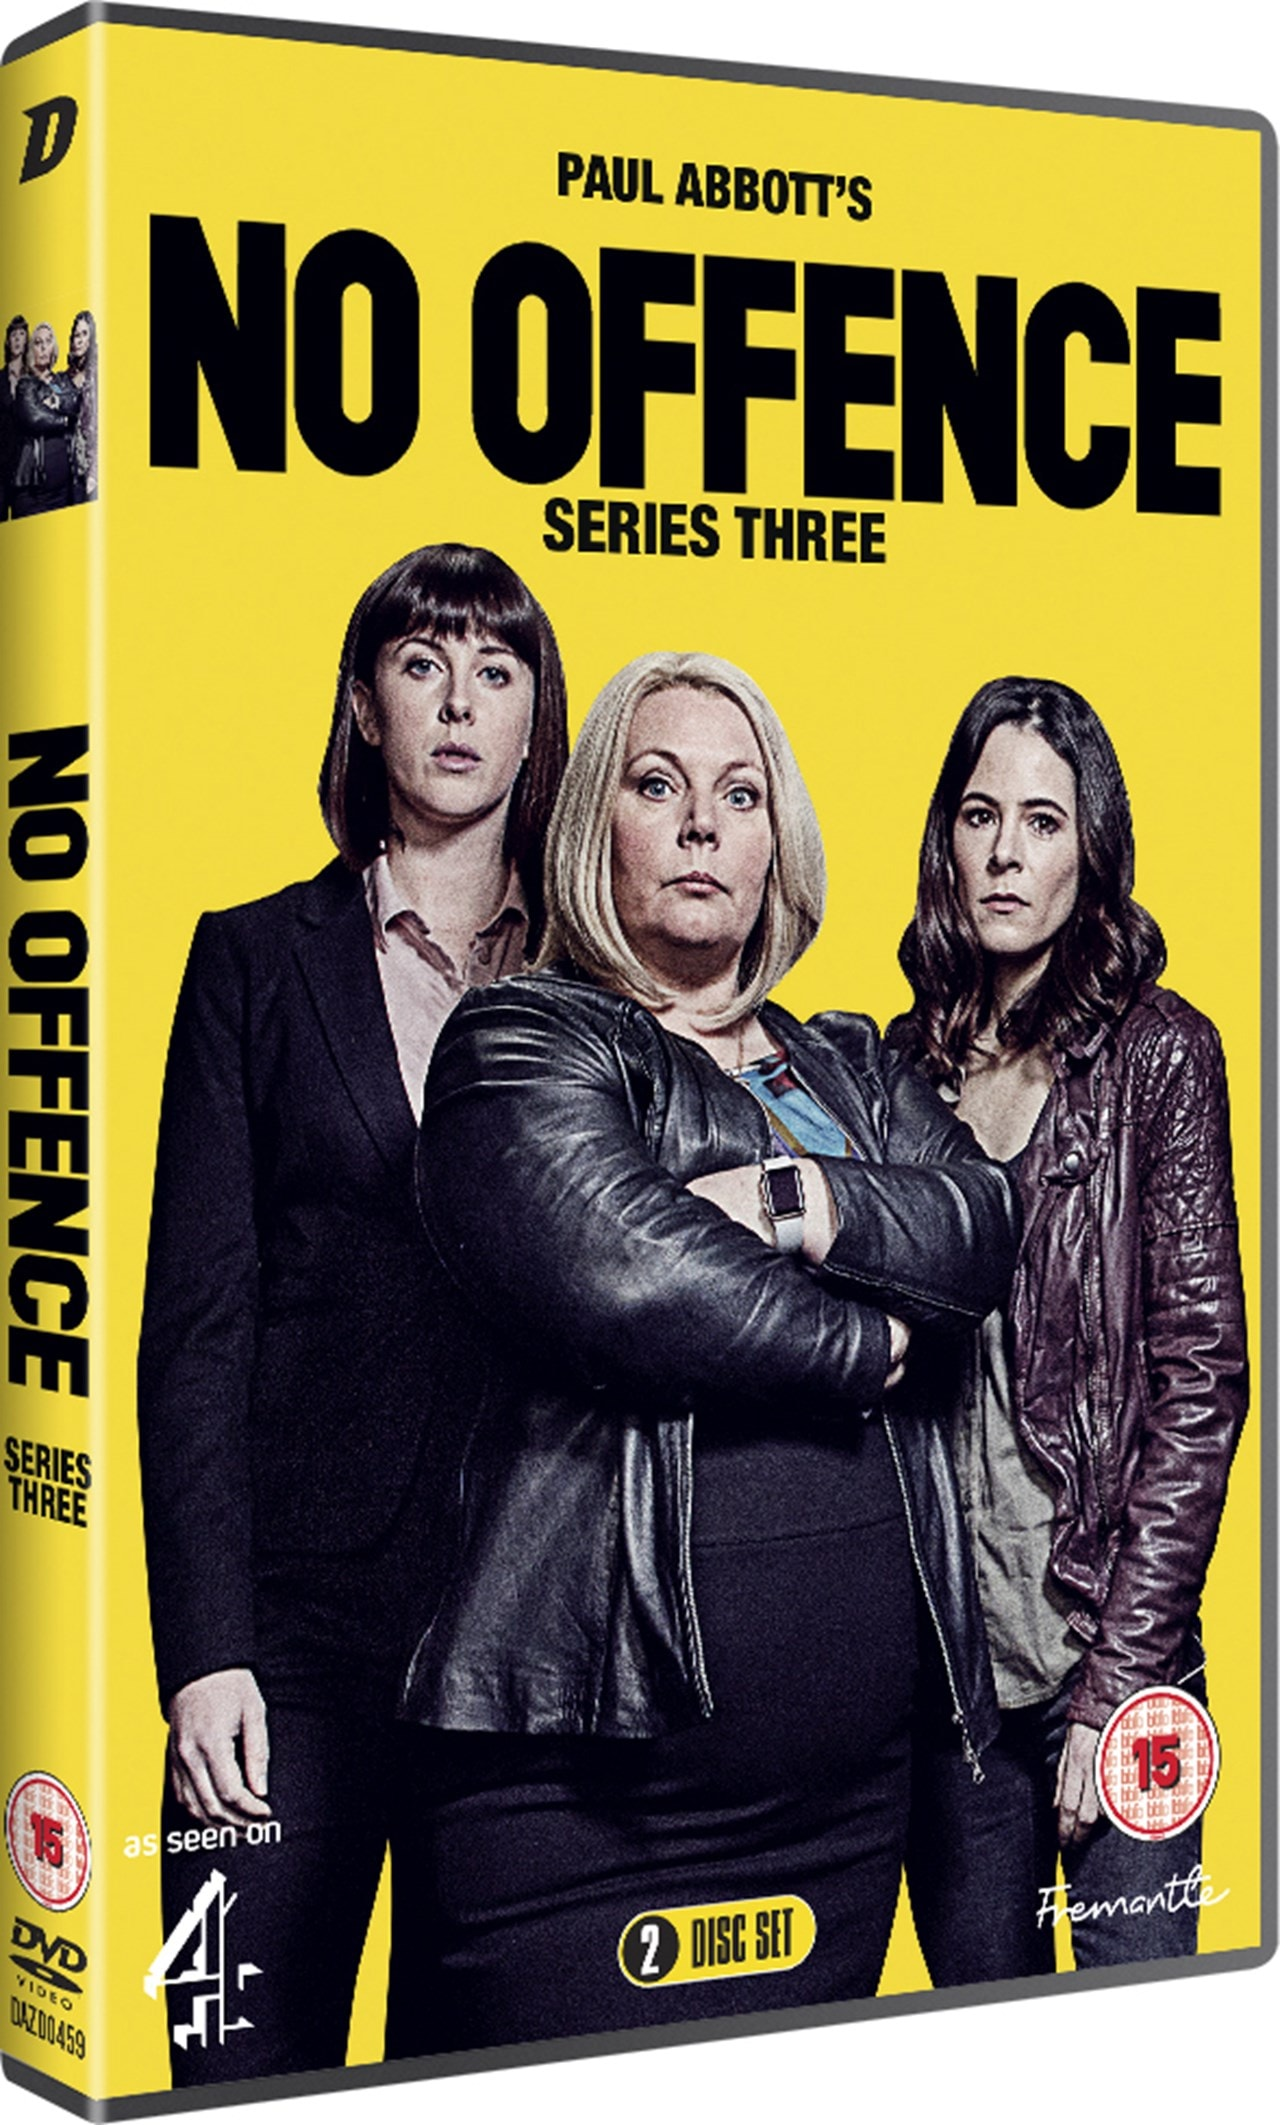 No Offence: Series 3 - 2